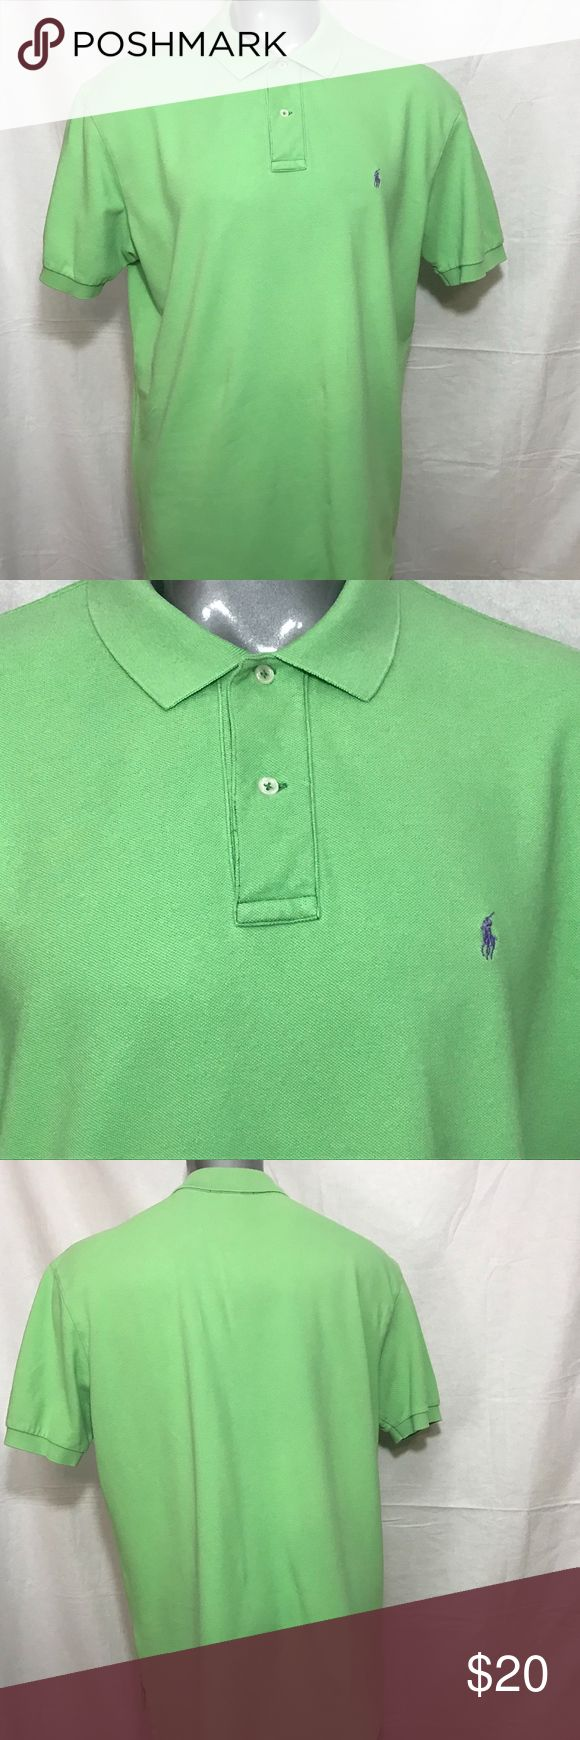 Polo by Ralph Lauren Green Shirt - XL Polo Ralph Lauren  Green  XL Gently pre-owned condition - thoroughly checked - no tears, holes, snags, fading or stains. (Please see photos in listing) OFFERS ACCEPTED :) Please submit your BEST offer to us. We look forward to satisfying you as a customer. Let's do business! Polo by Ralph Lauren Shirts Polos